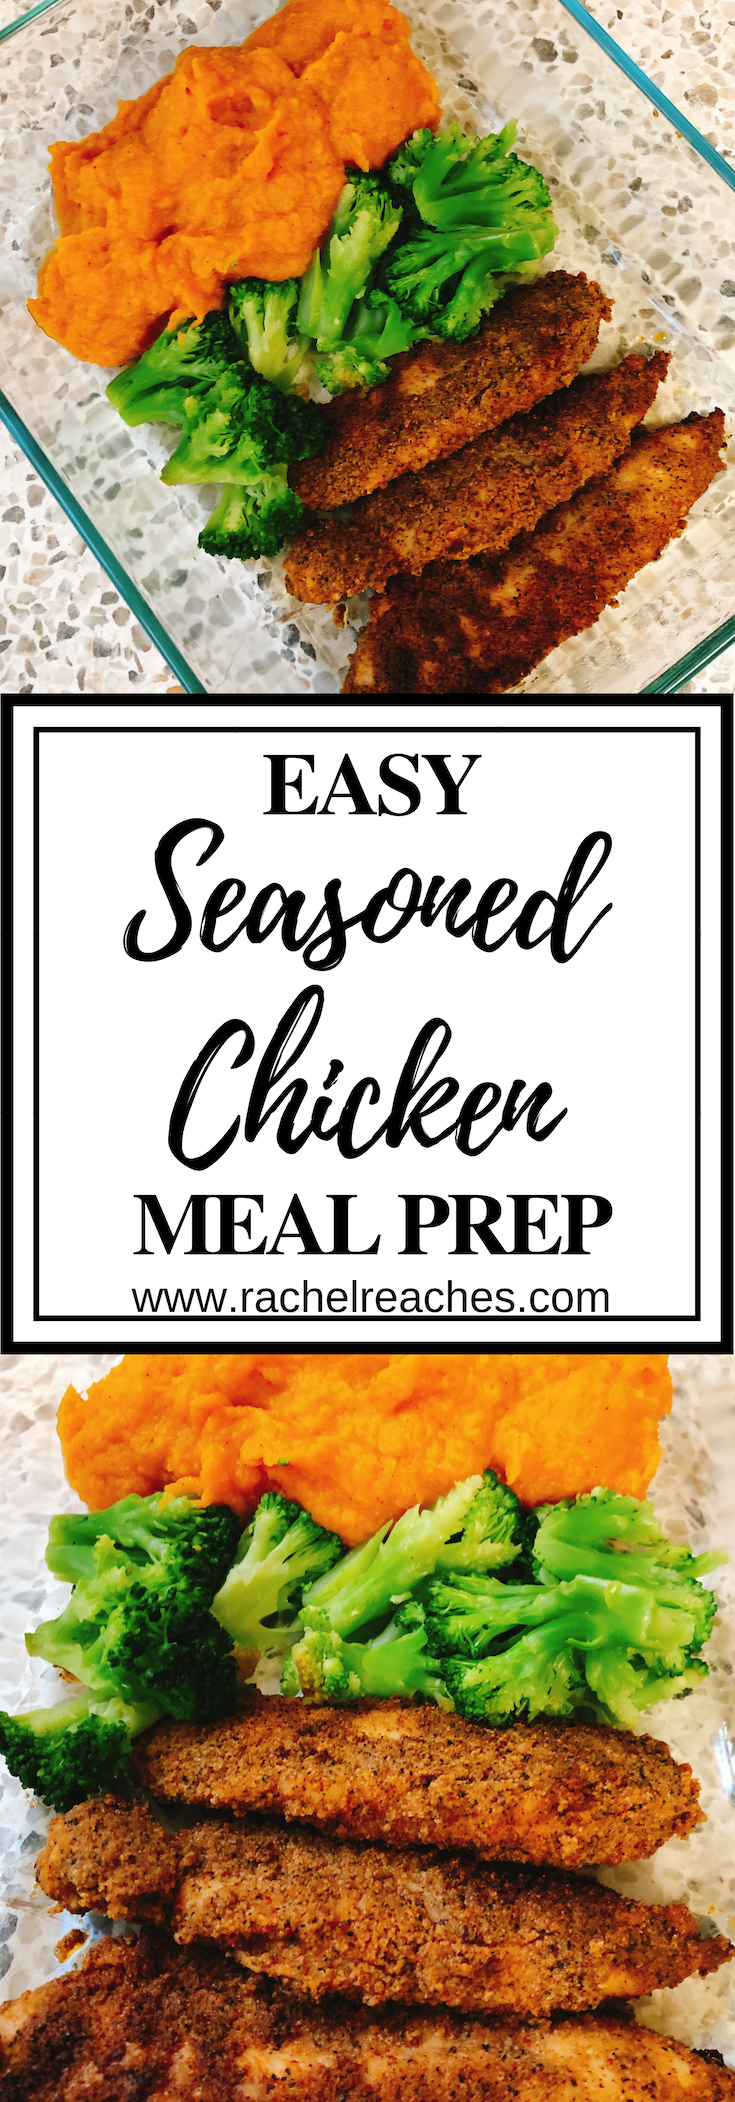 Seasoned Chicken Meal Prep Pin - Healthy Eating.png